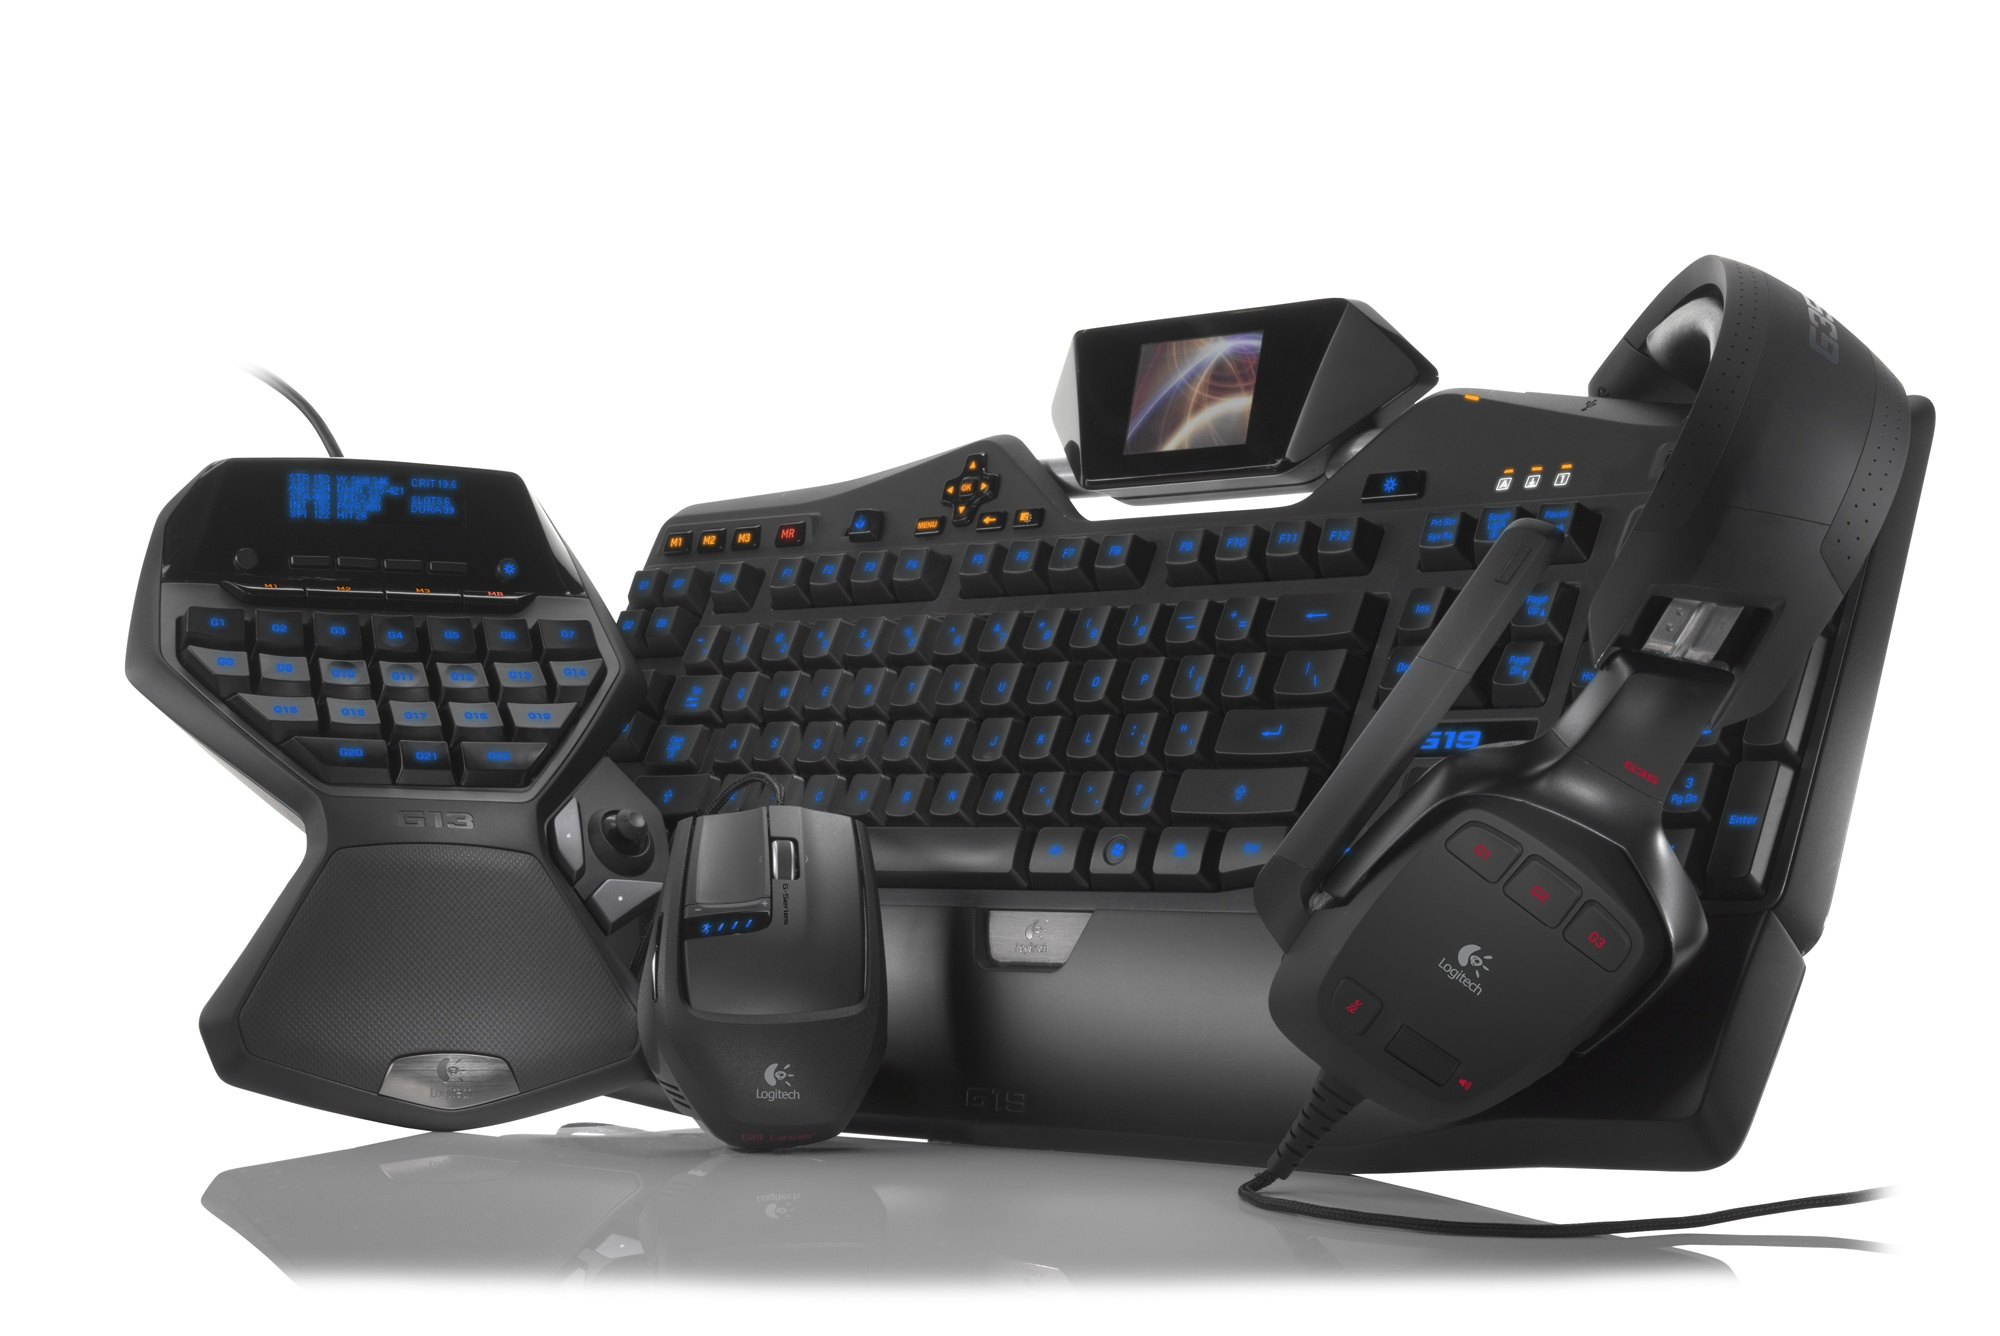 Gaming Keyboard Accessories : new logitech g series peripherals unveiled techpowerup ~ Hamham.info Haus und Dekorationen